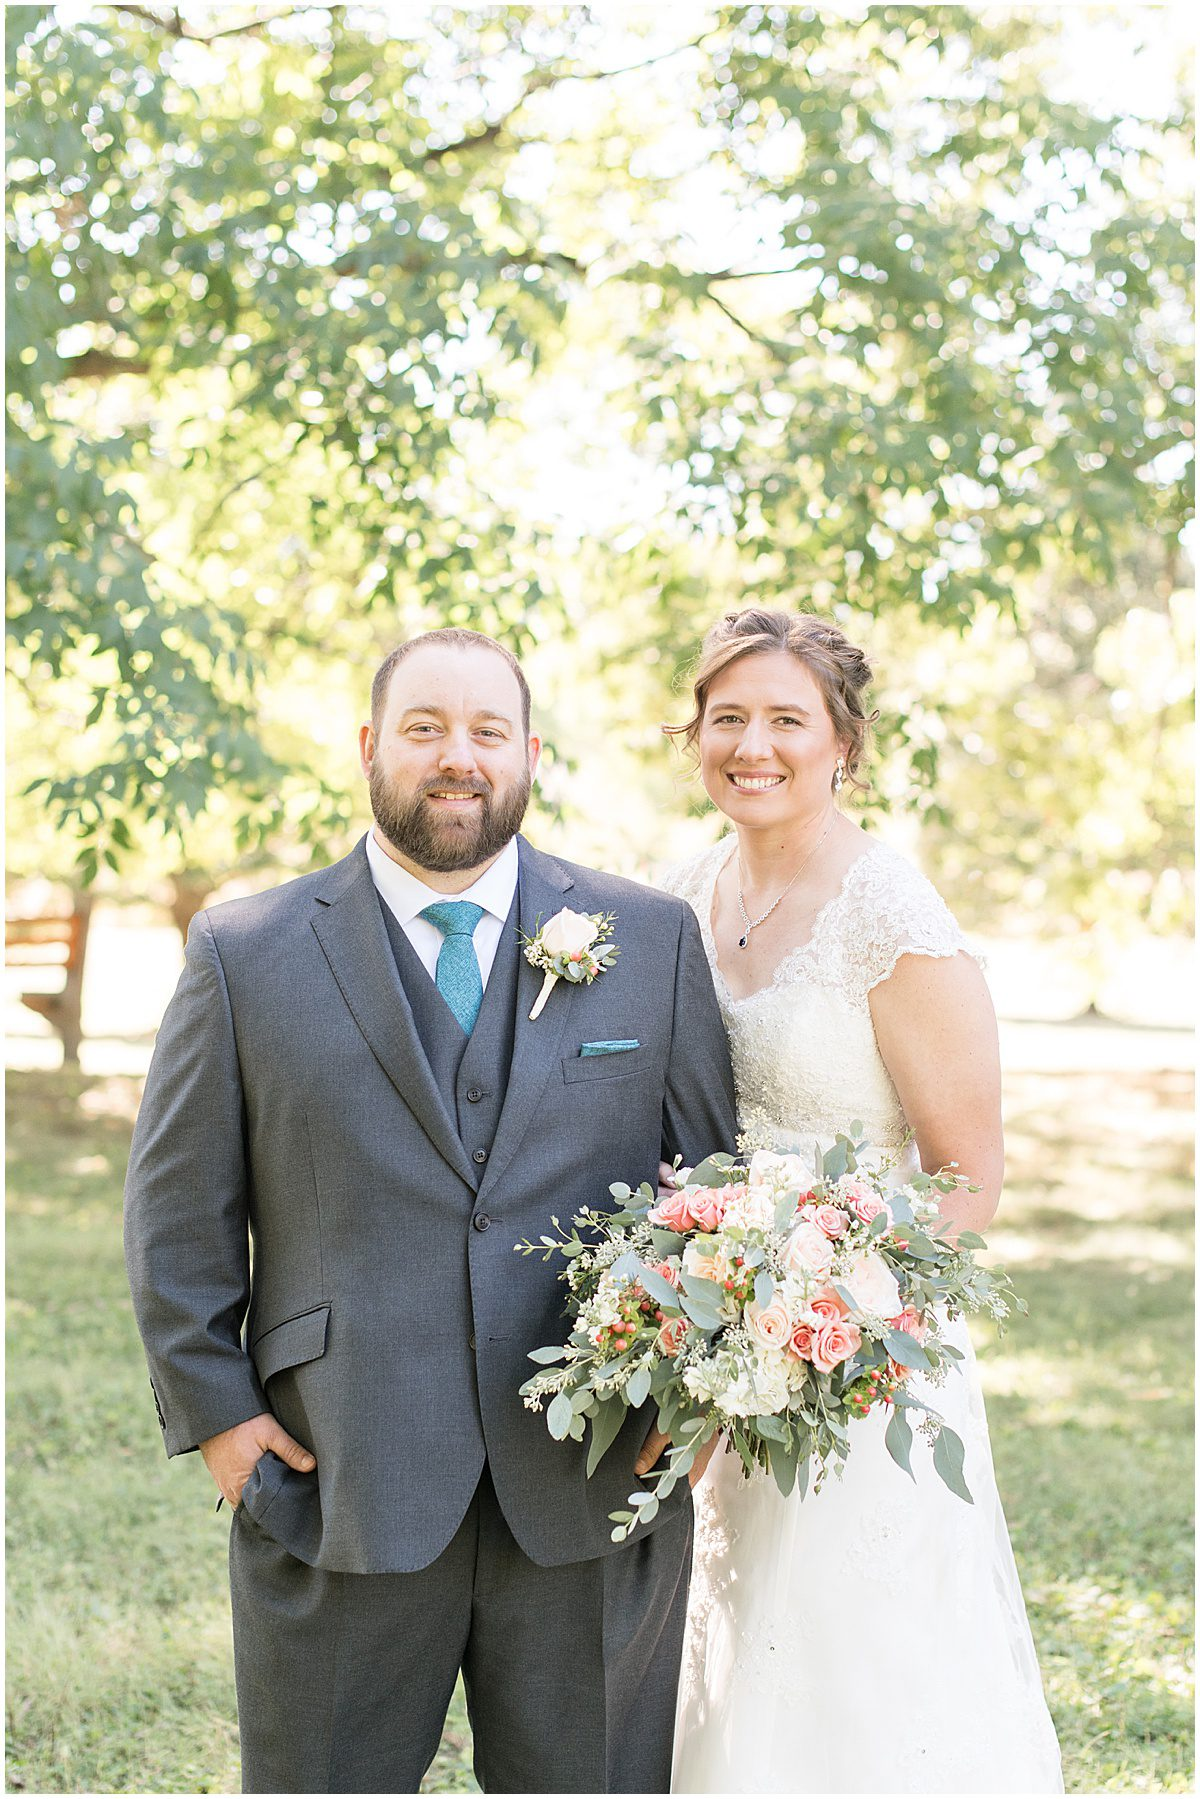 Bride and groom portraits for intimate wedding at Holliday Park in Indianapolis by Victoria Rayburn Photography